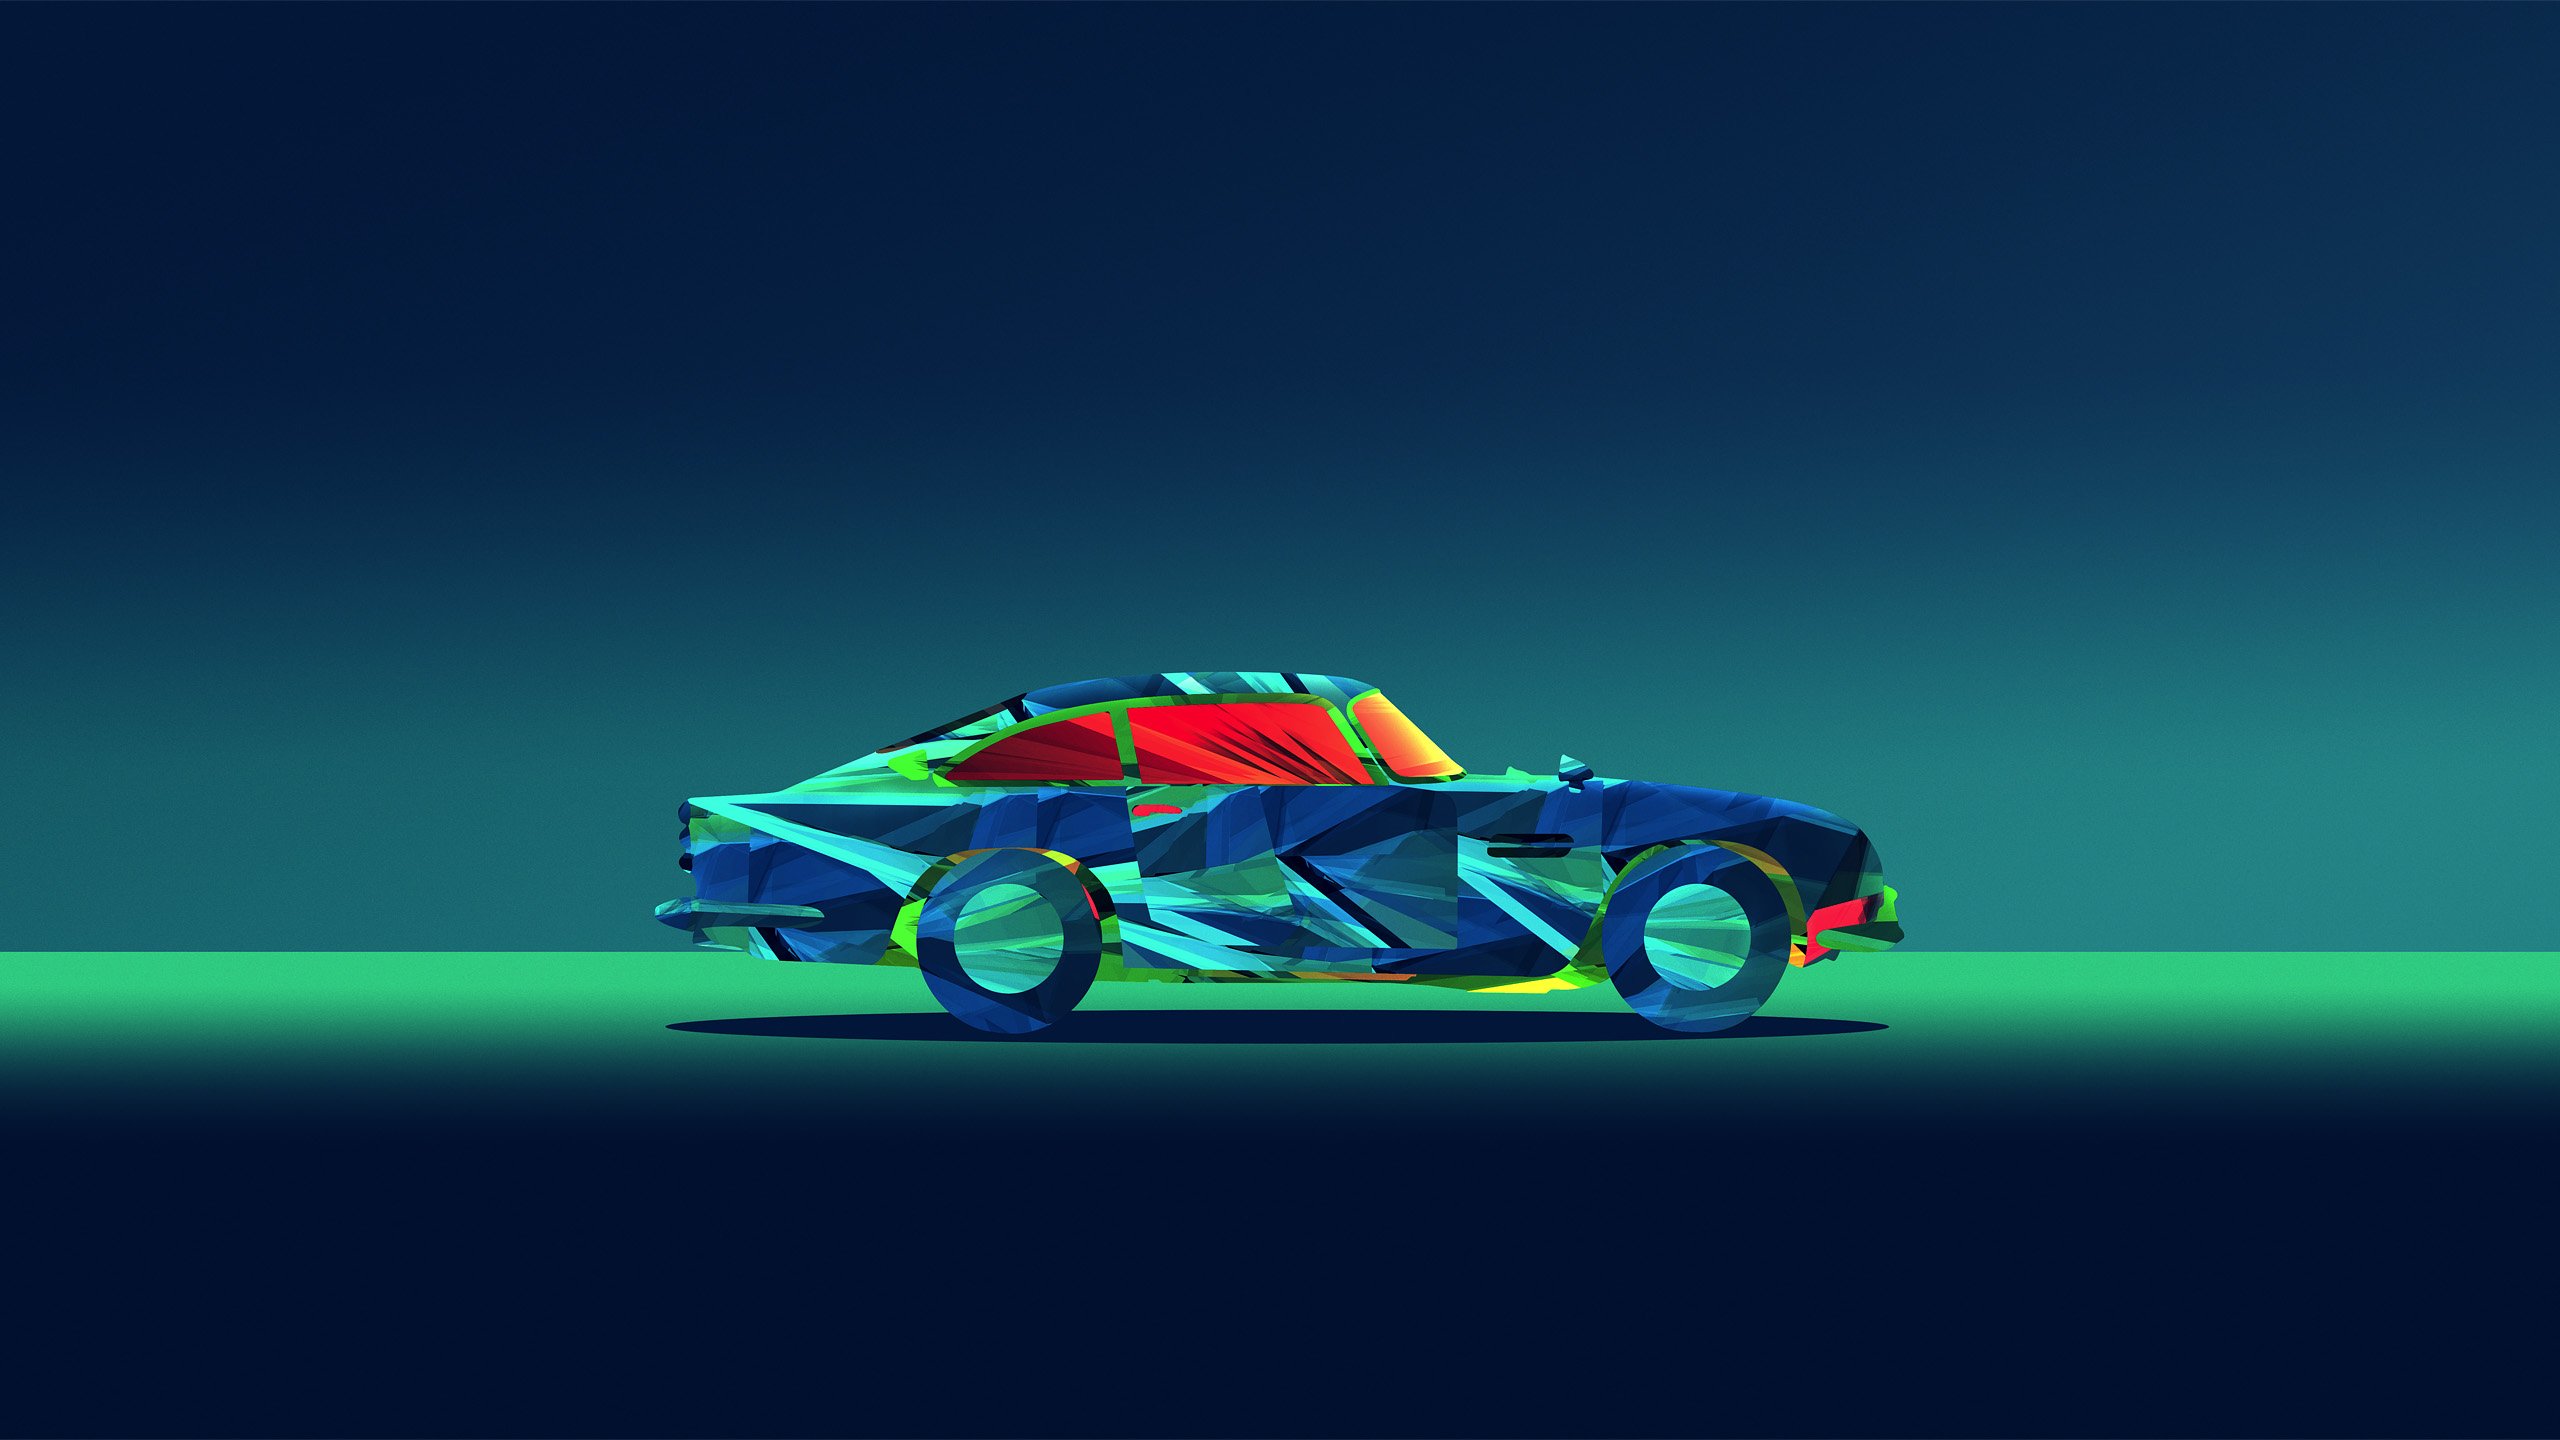 Abstract Car Facets Justin Maller